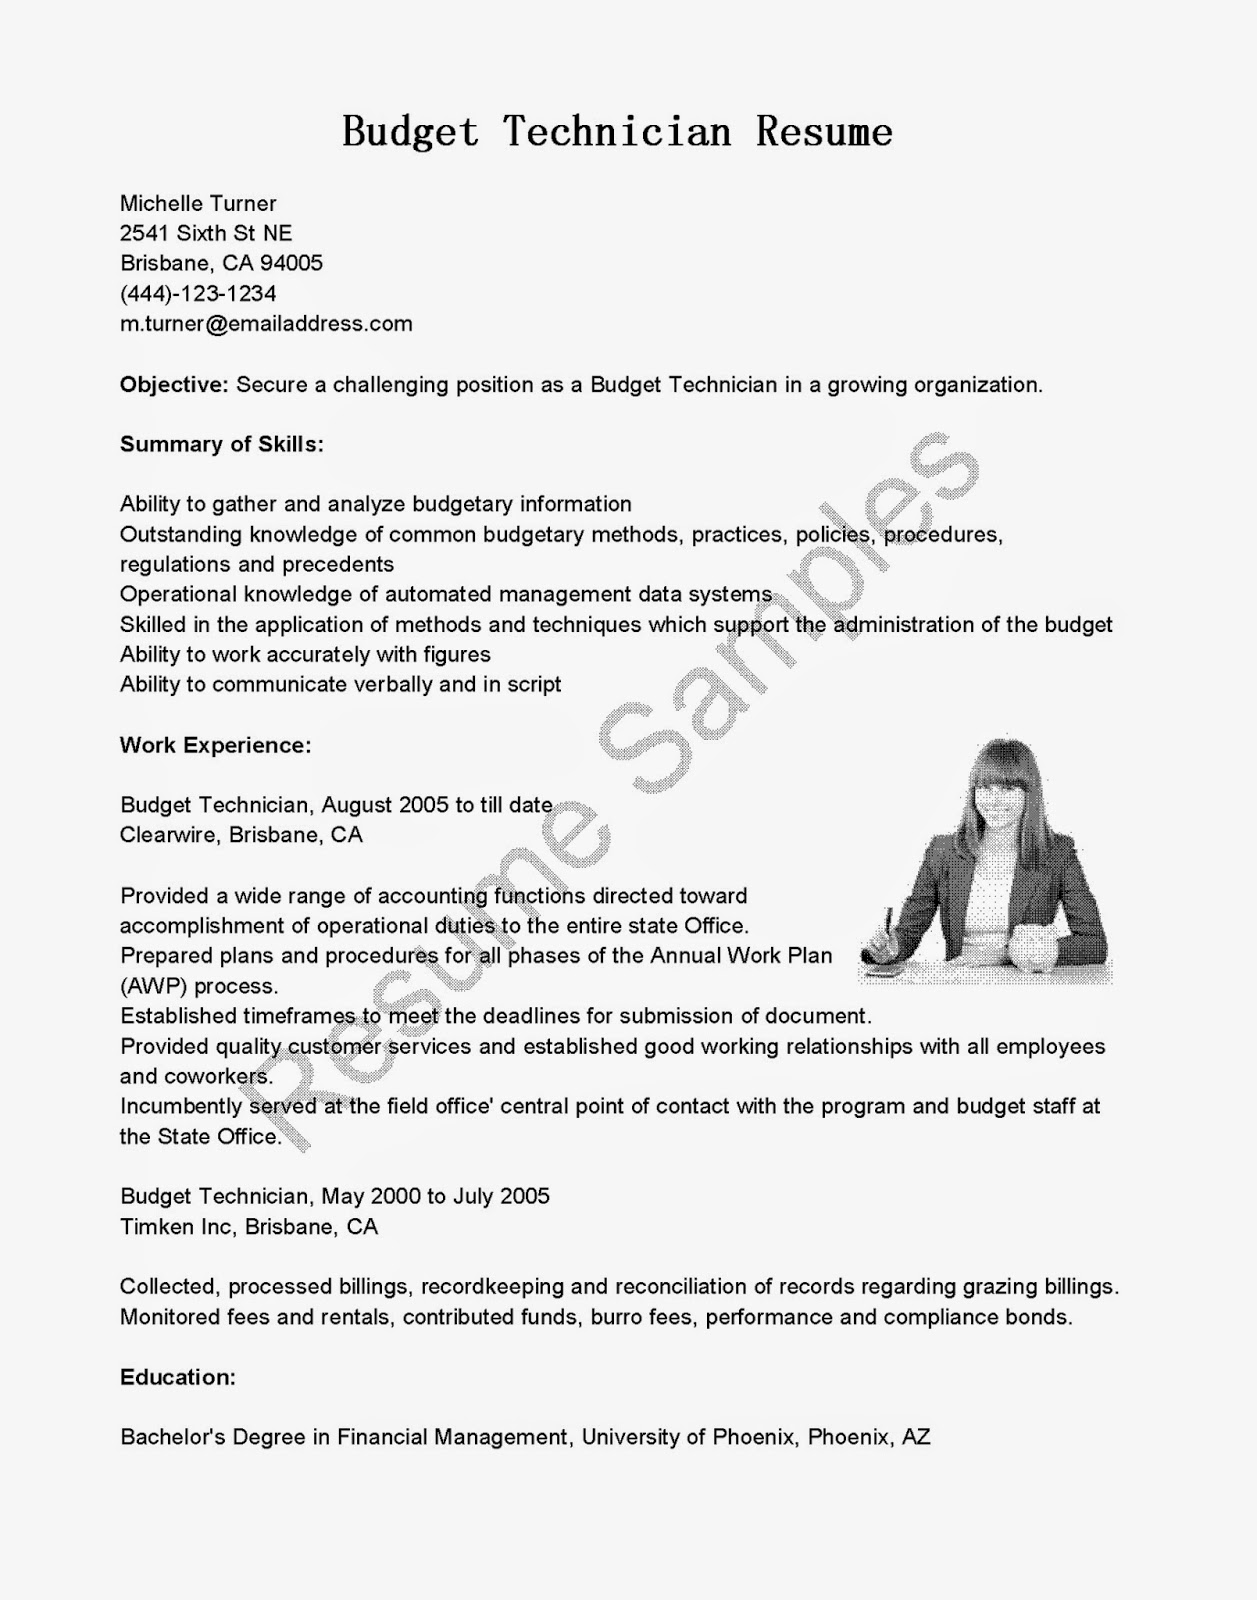 resume samples  budget technician resume sample